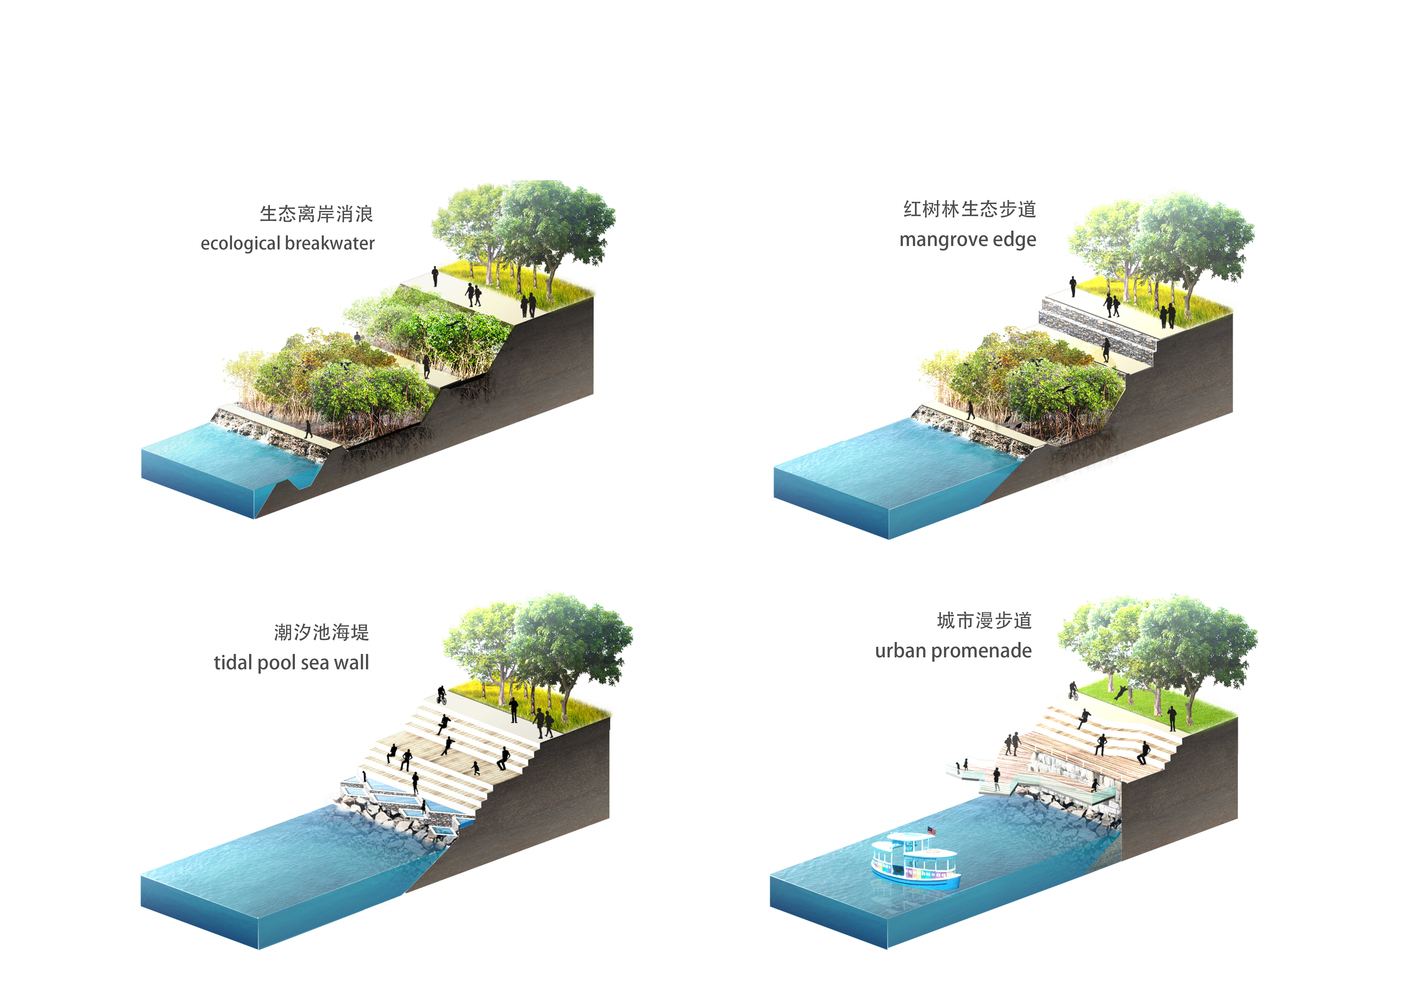 small resolution of sasaki s forest city master plan in iskandar malaysia stretches across 4 islands section